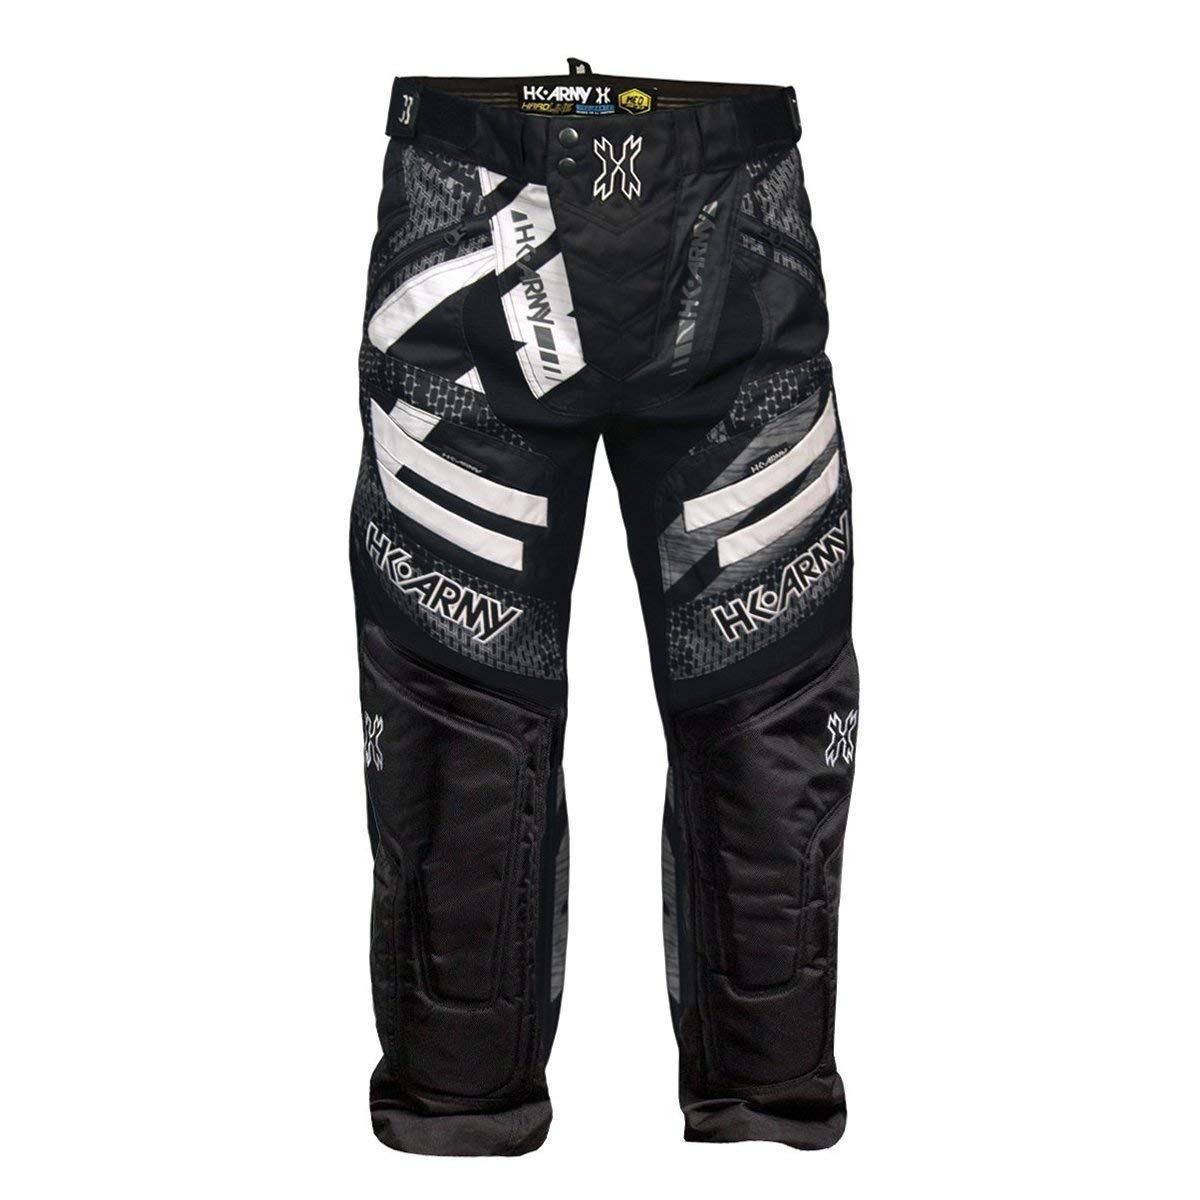 f2df3598313ac3 Get Quotations · HK Army Hardline Paintball Pants - 2018/2019 Styles